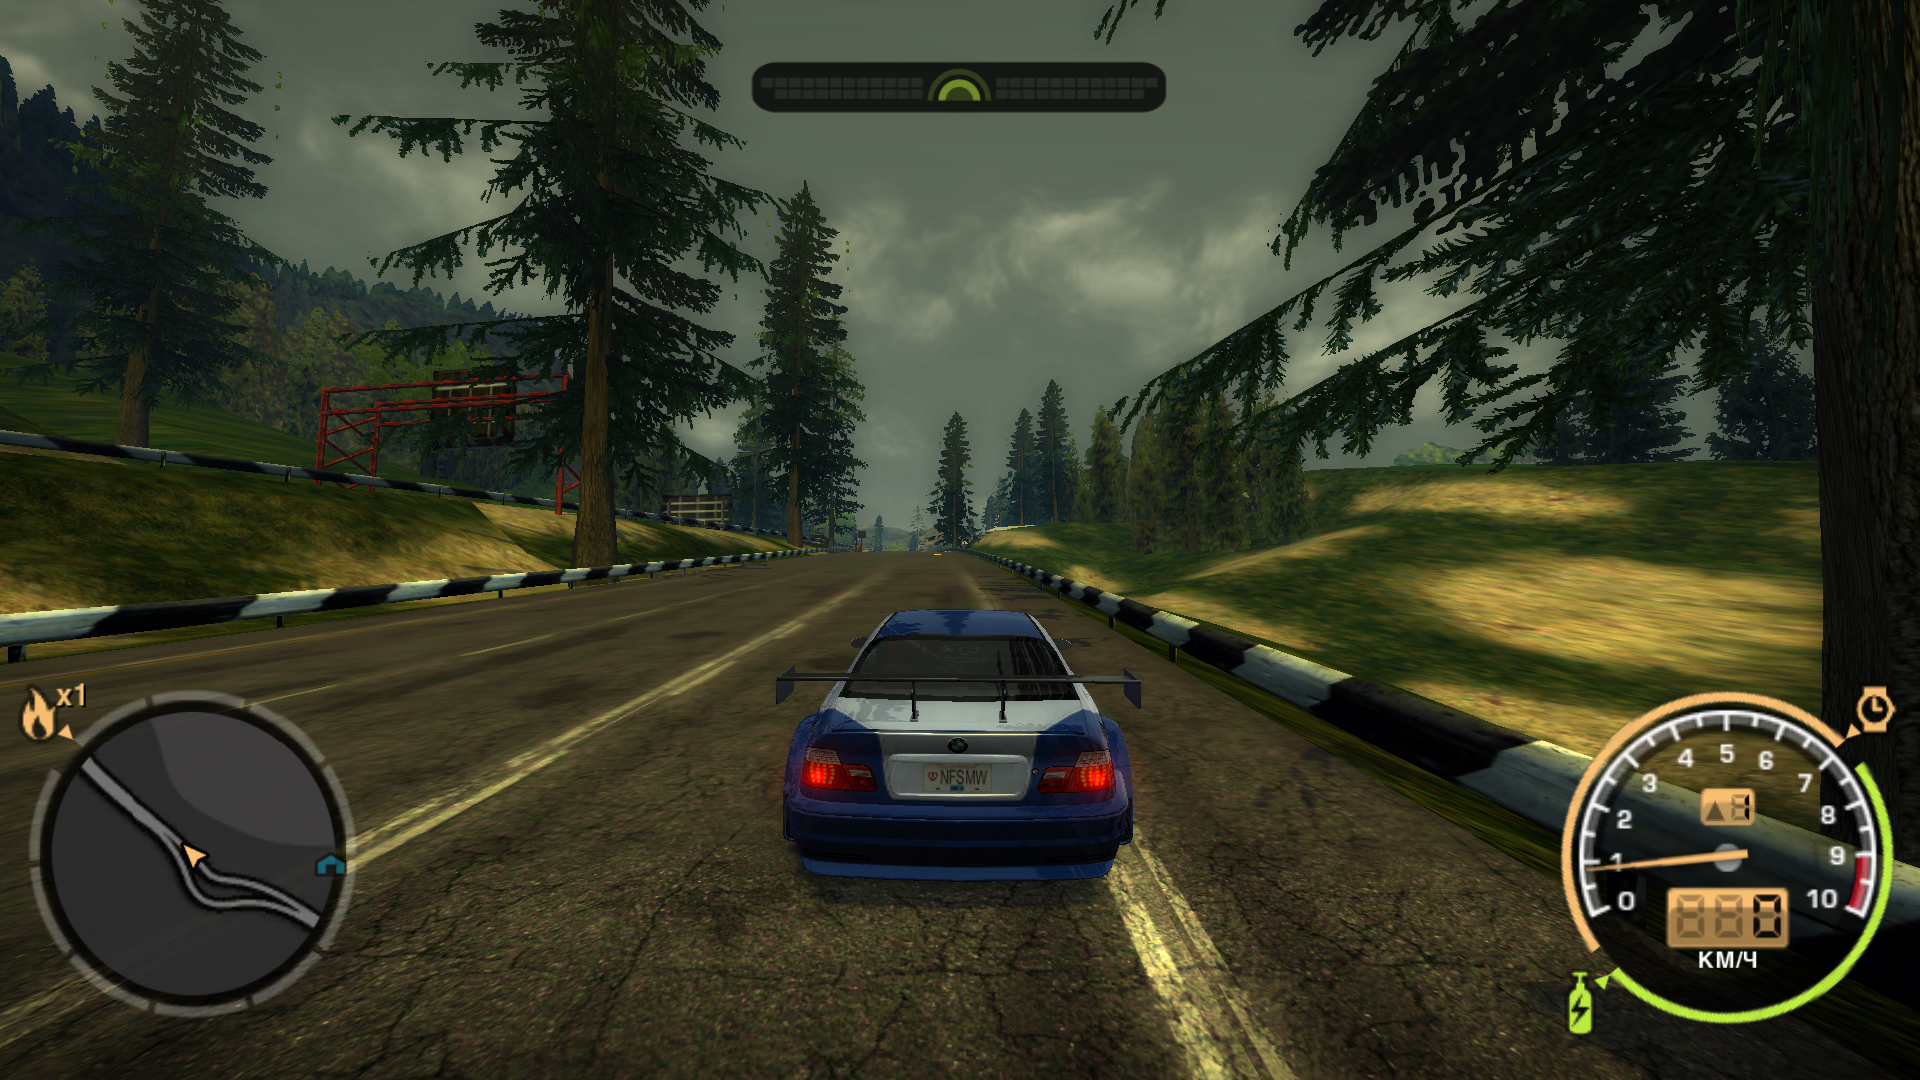 speed 2019-12-01 21-35-25-310.jpg - Need for Speed: Most Wanted (2005)